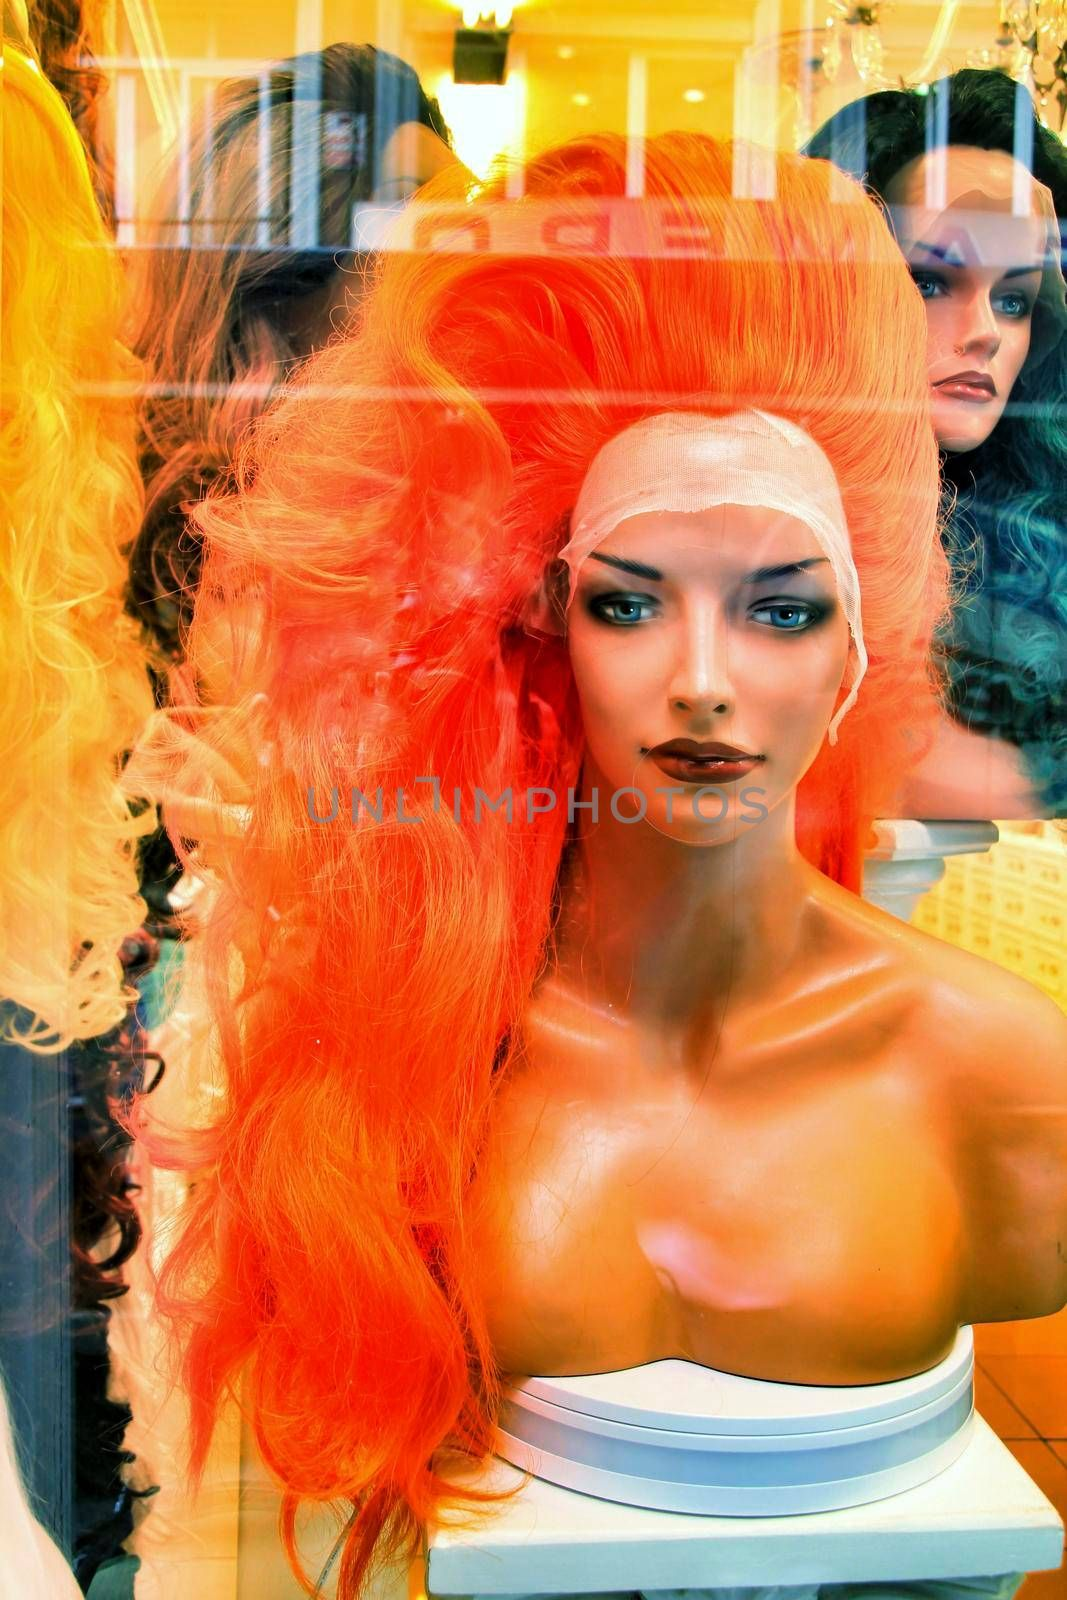 Showcase in store with colorful wigs for drag queens